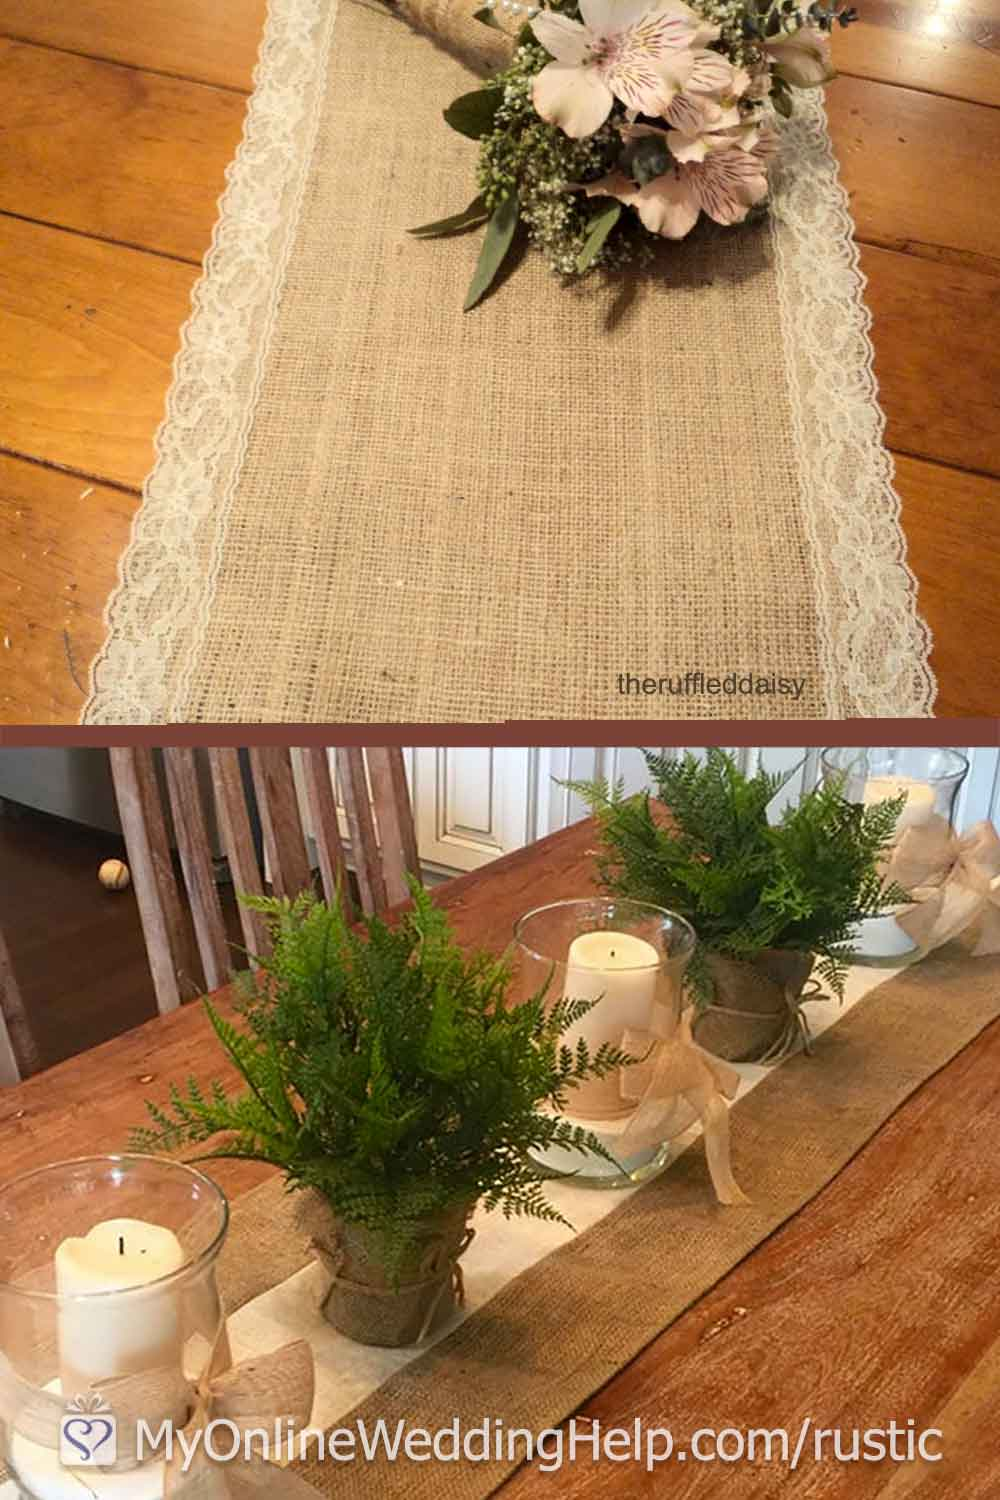 Unique rustic table runners for wedding or event decor. I love how Amber adds ruffles or lace to hers. Scroll to number 15 of the 25 rustic elegant wedding ideas for more info or to purchase. On the My Online Wedding Help blog.